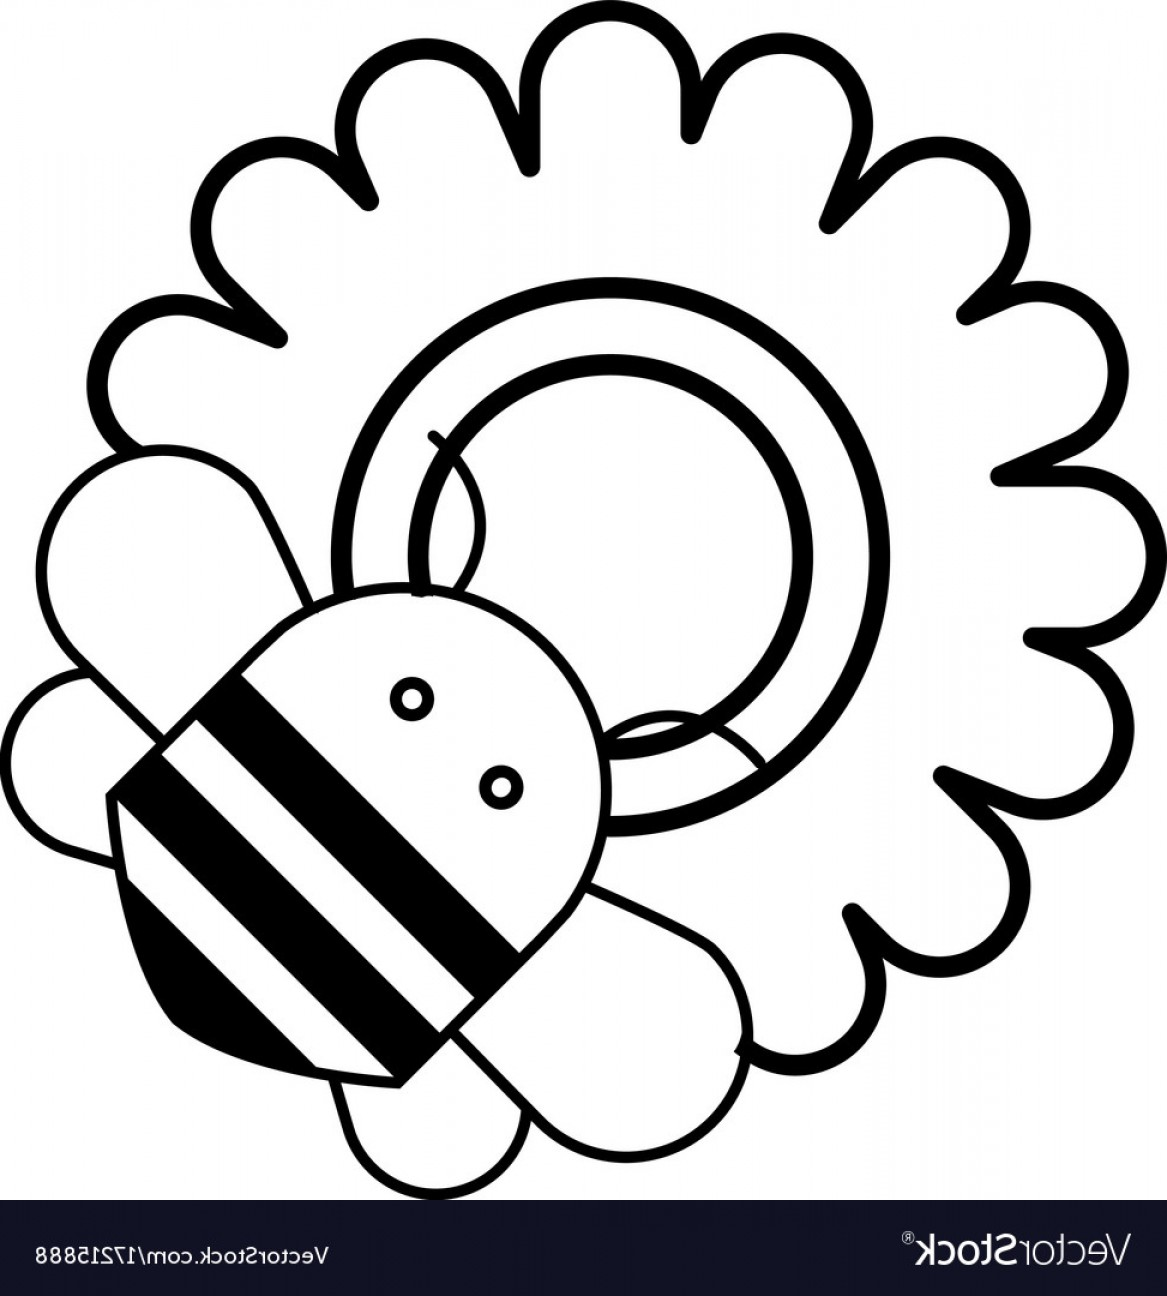 Bee Outline Vector: Bee On Flower Icon Outline Style Vector